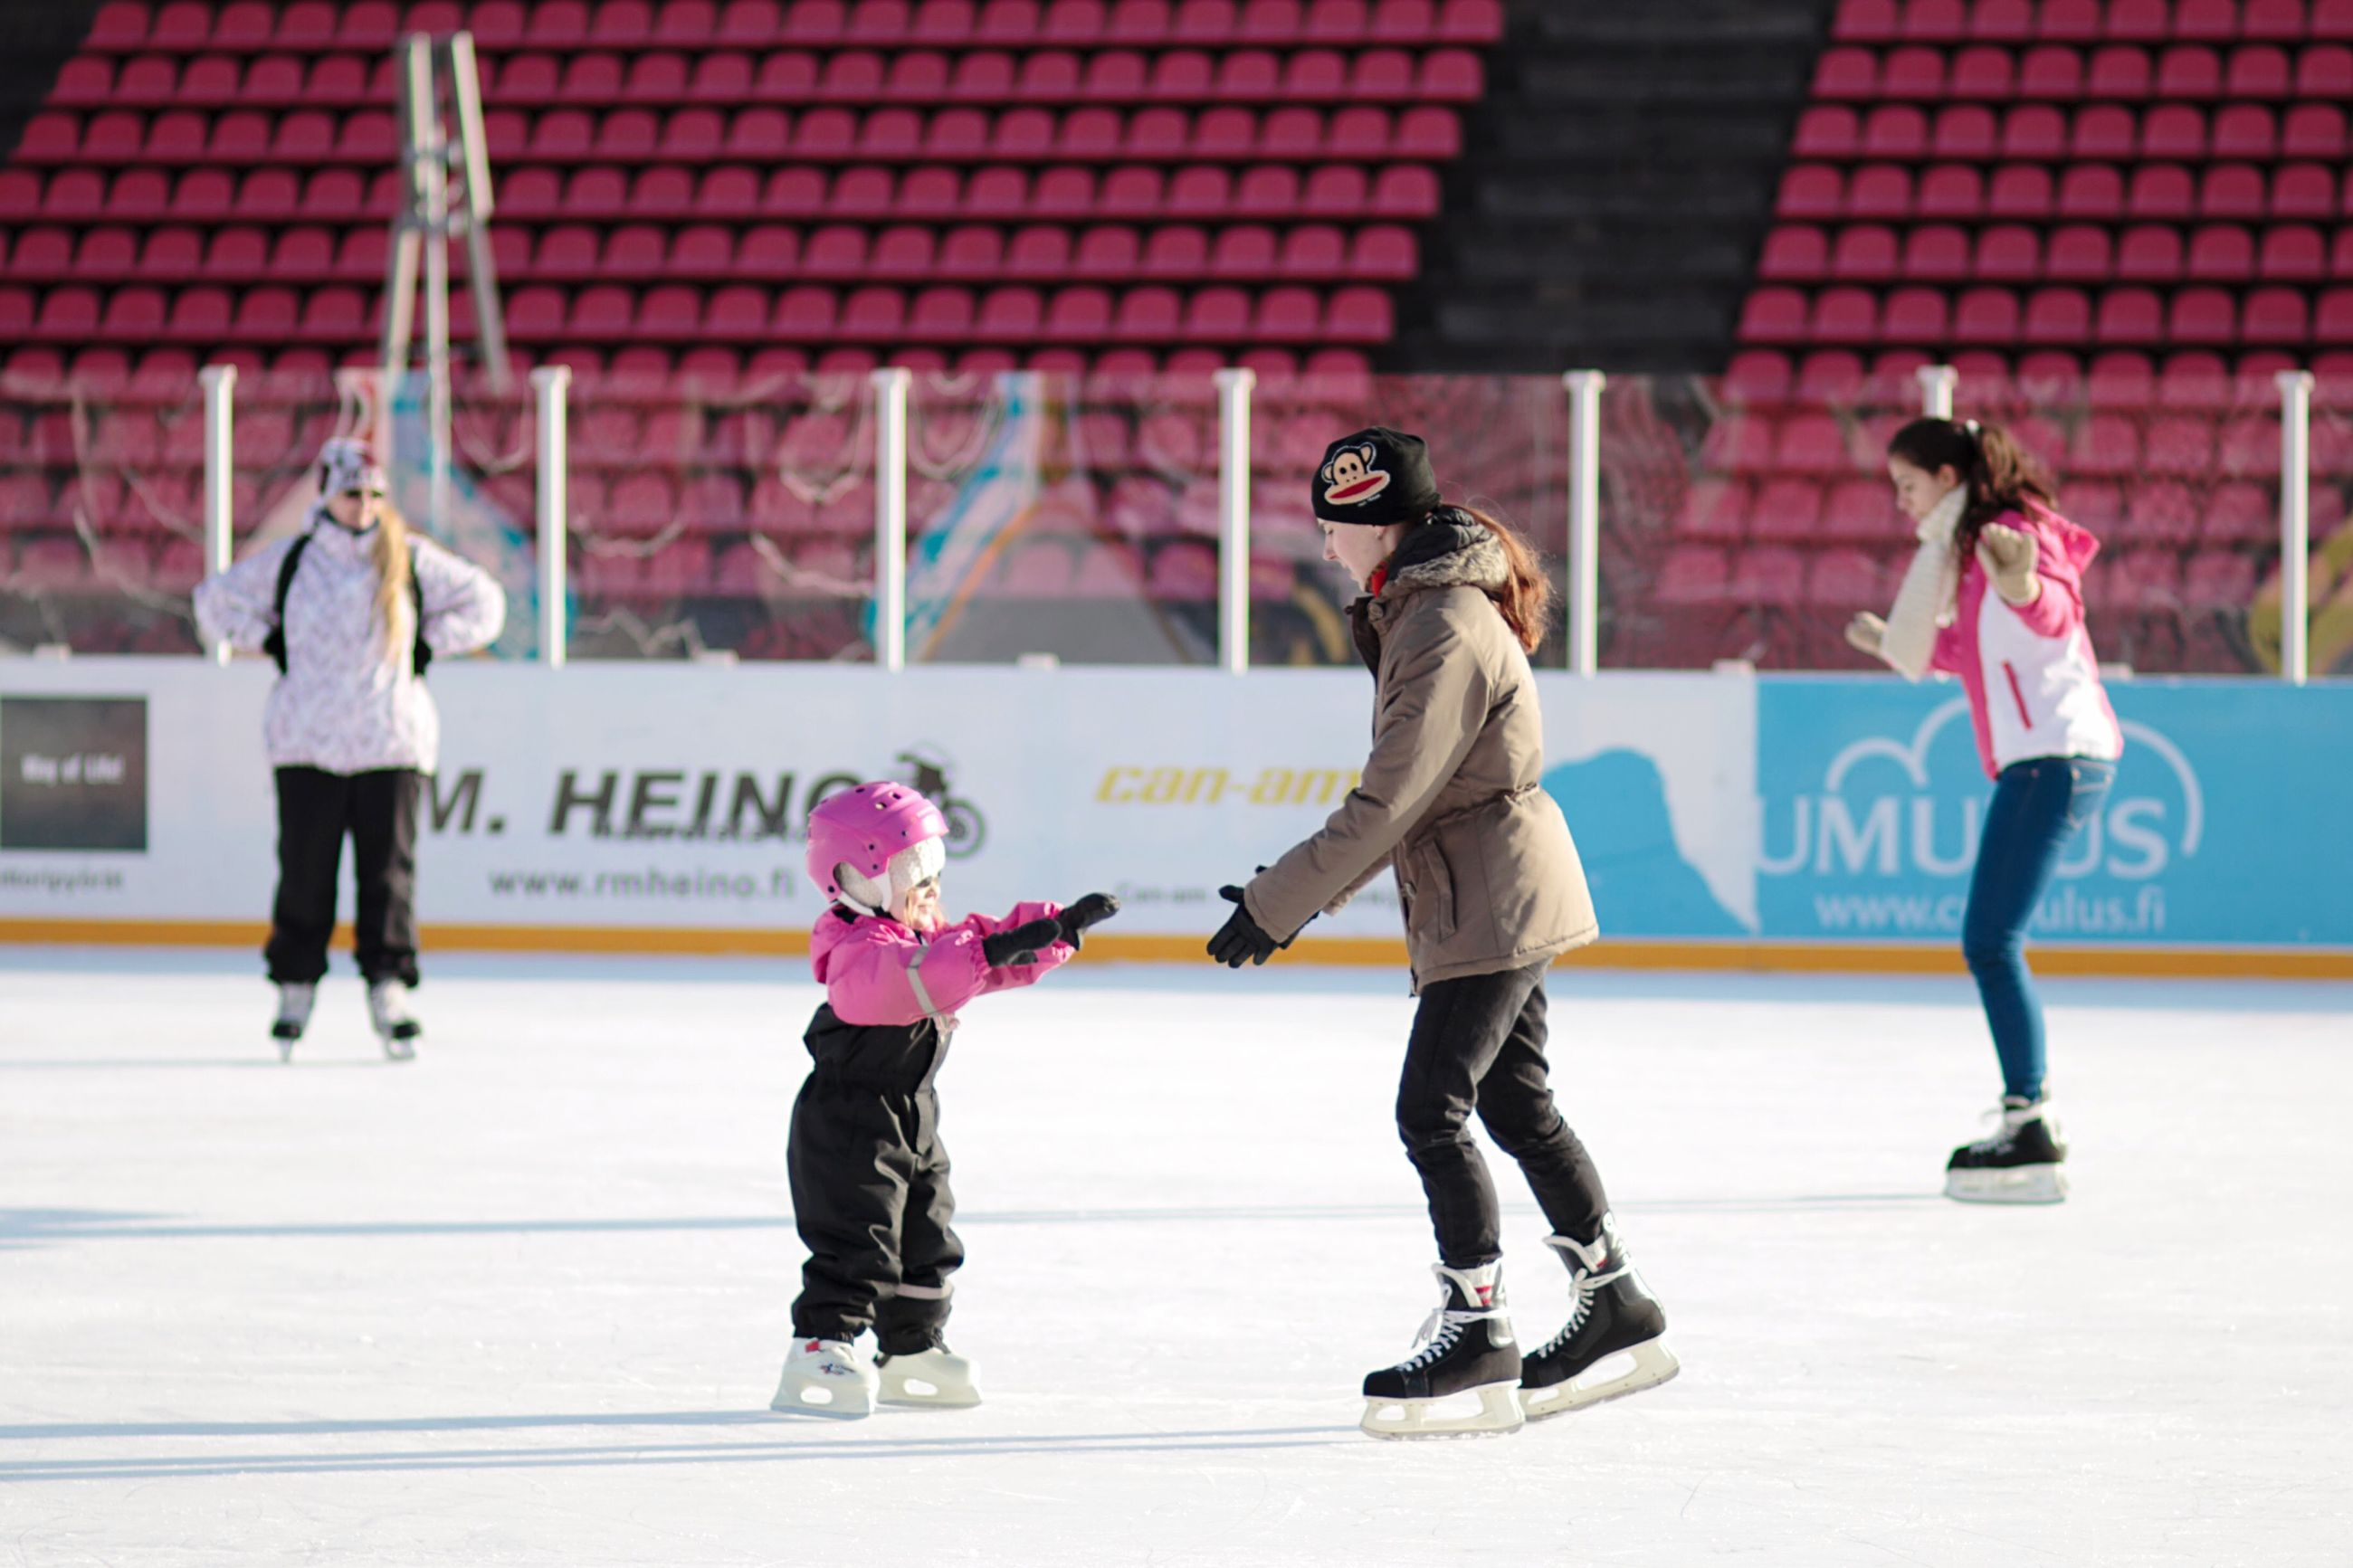 full length, girls, candid, leisure activity, child, outdoors, recreational pursuit, people, day, young adult, adult, friendship, young women, ice rink, taking a shot - sport